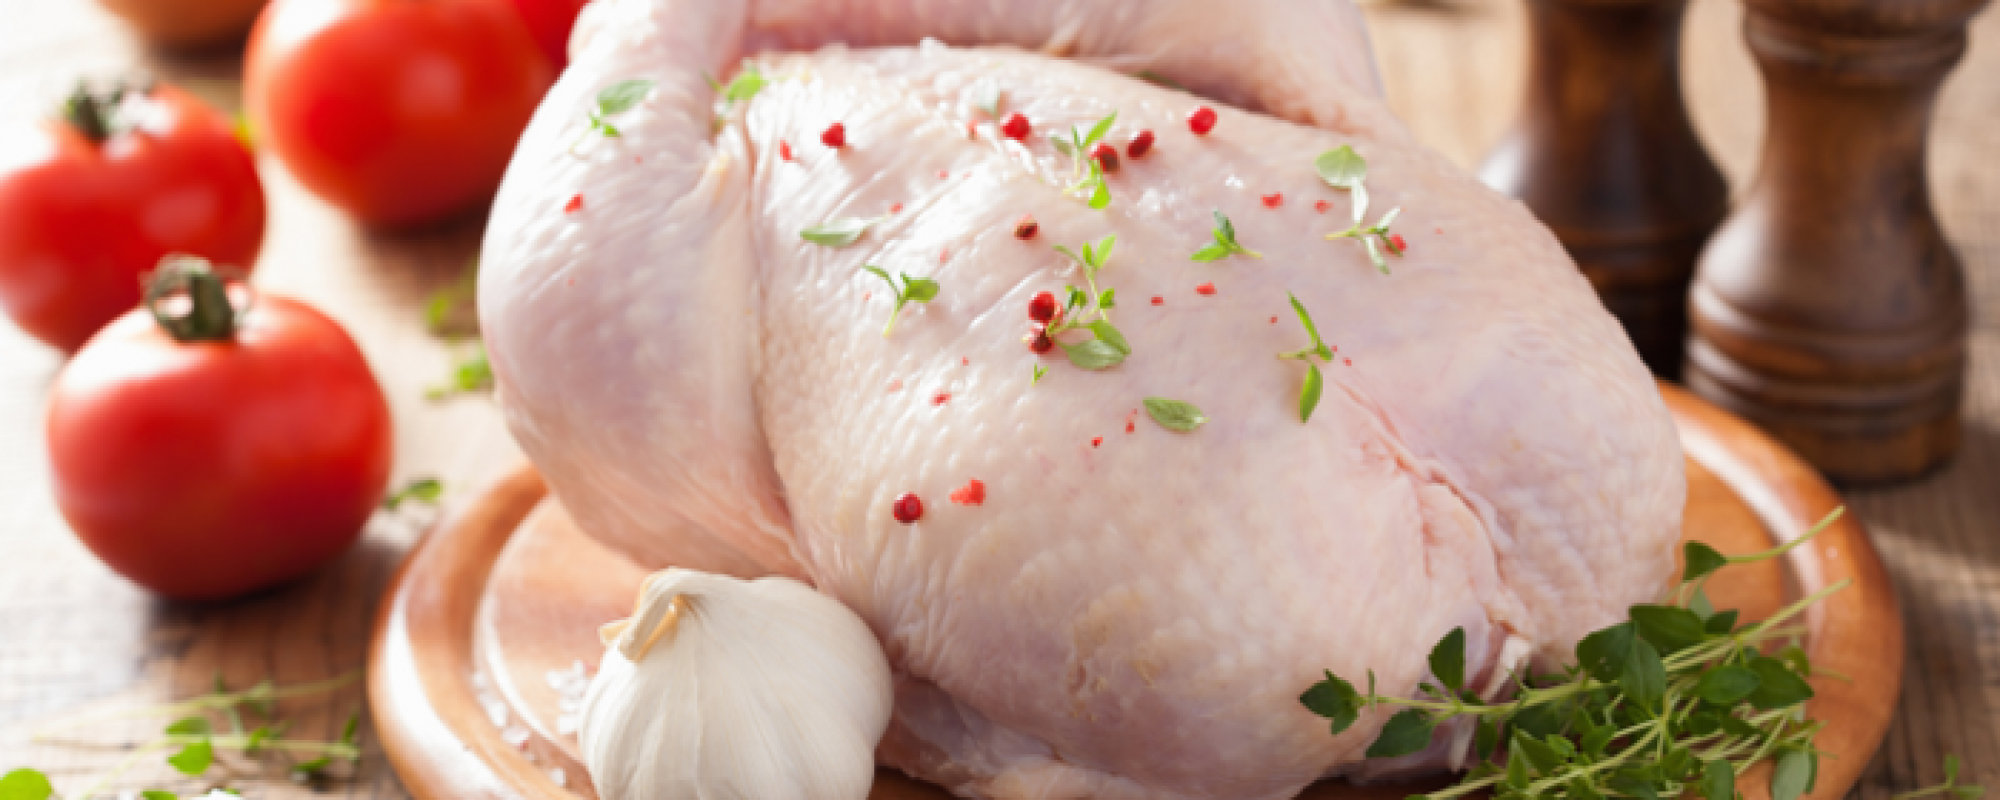 Tender Chicken Home Delivery in DLF Newtown – Chef & Butcher – The